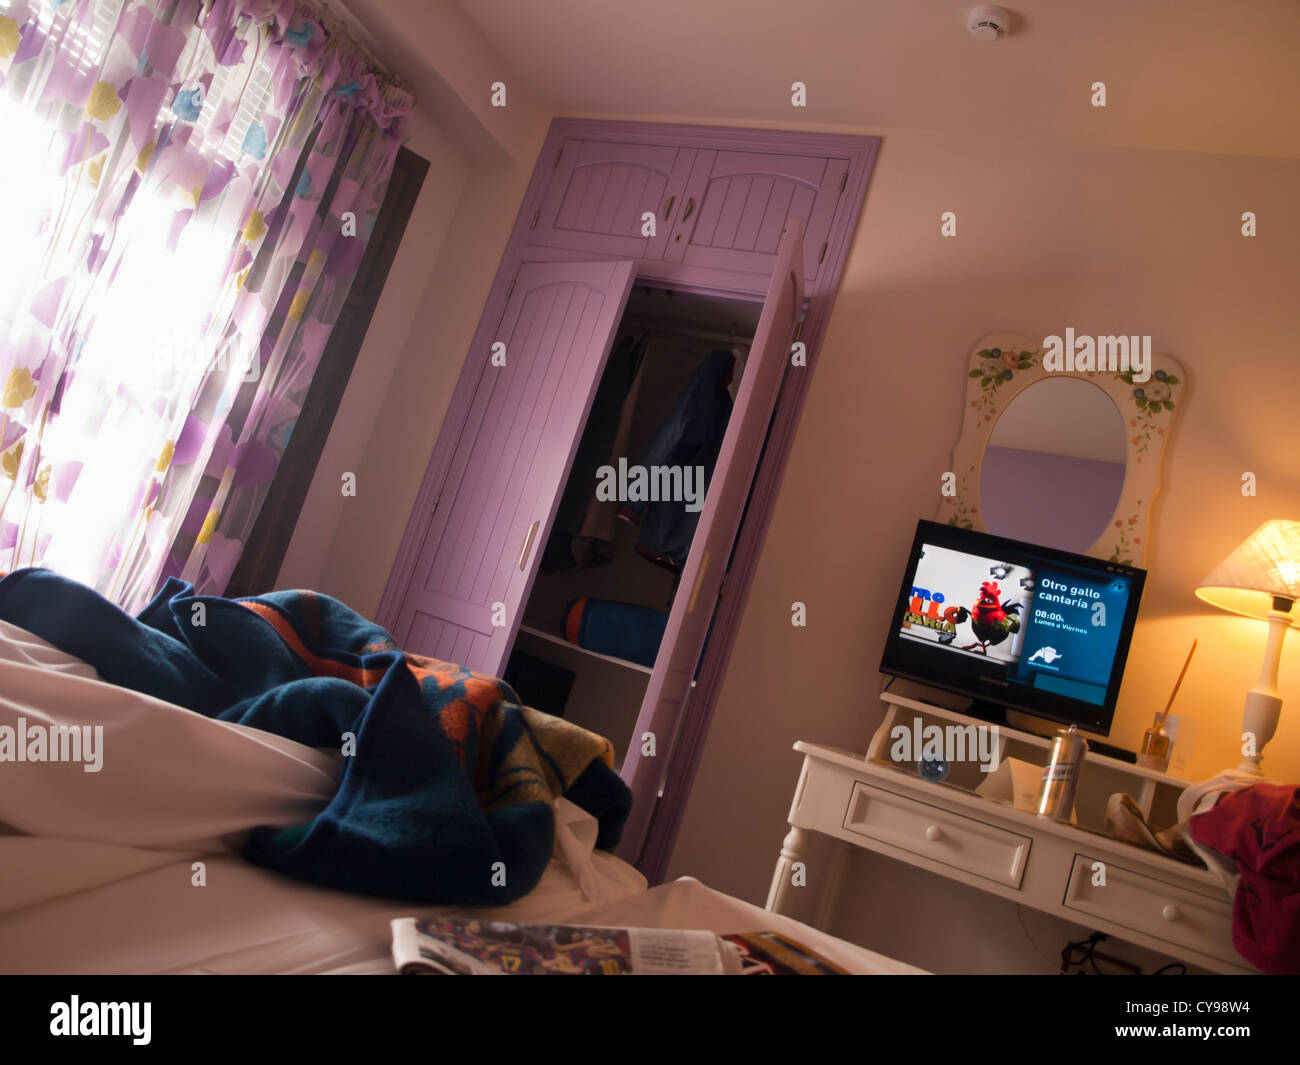 Casa Baños De La Villa Untidy Hotel Room Seen From Bed Television Screen Lilac Paint